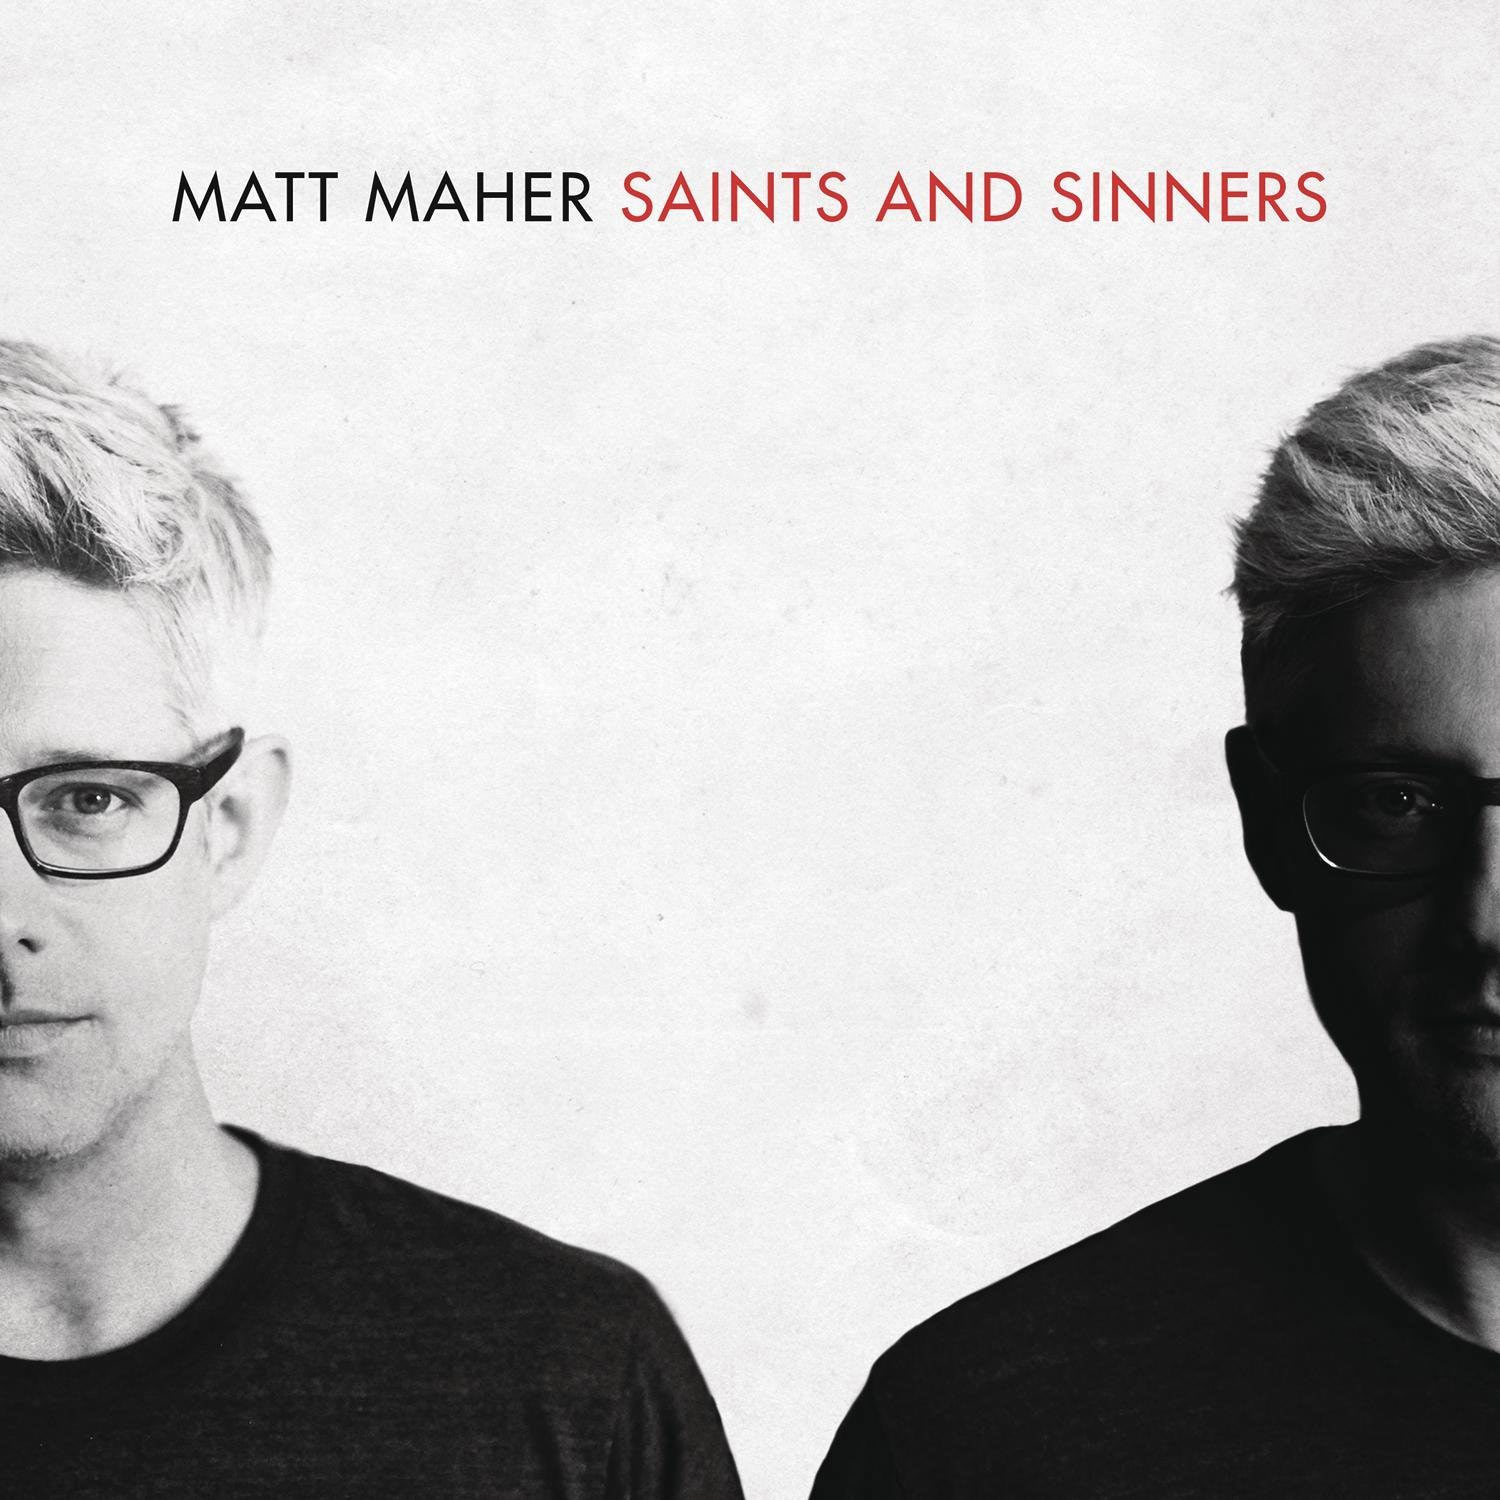 cecilia cover album matt maher